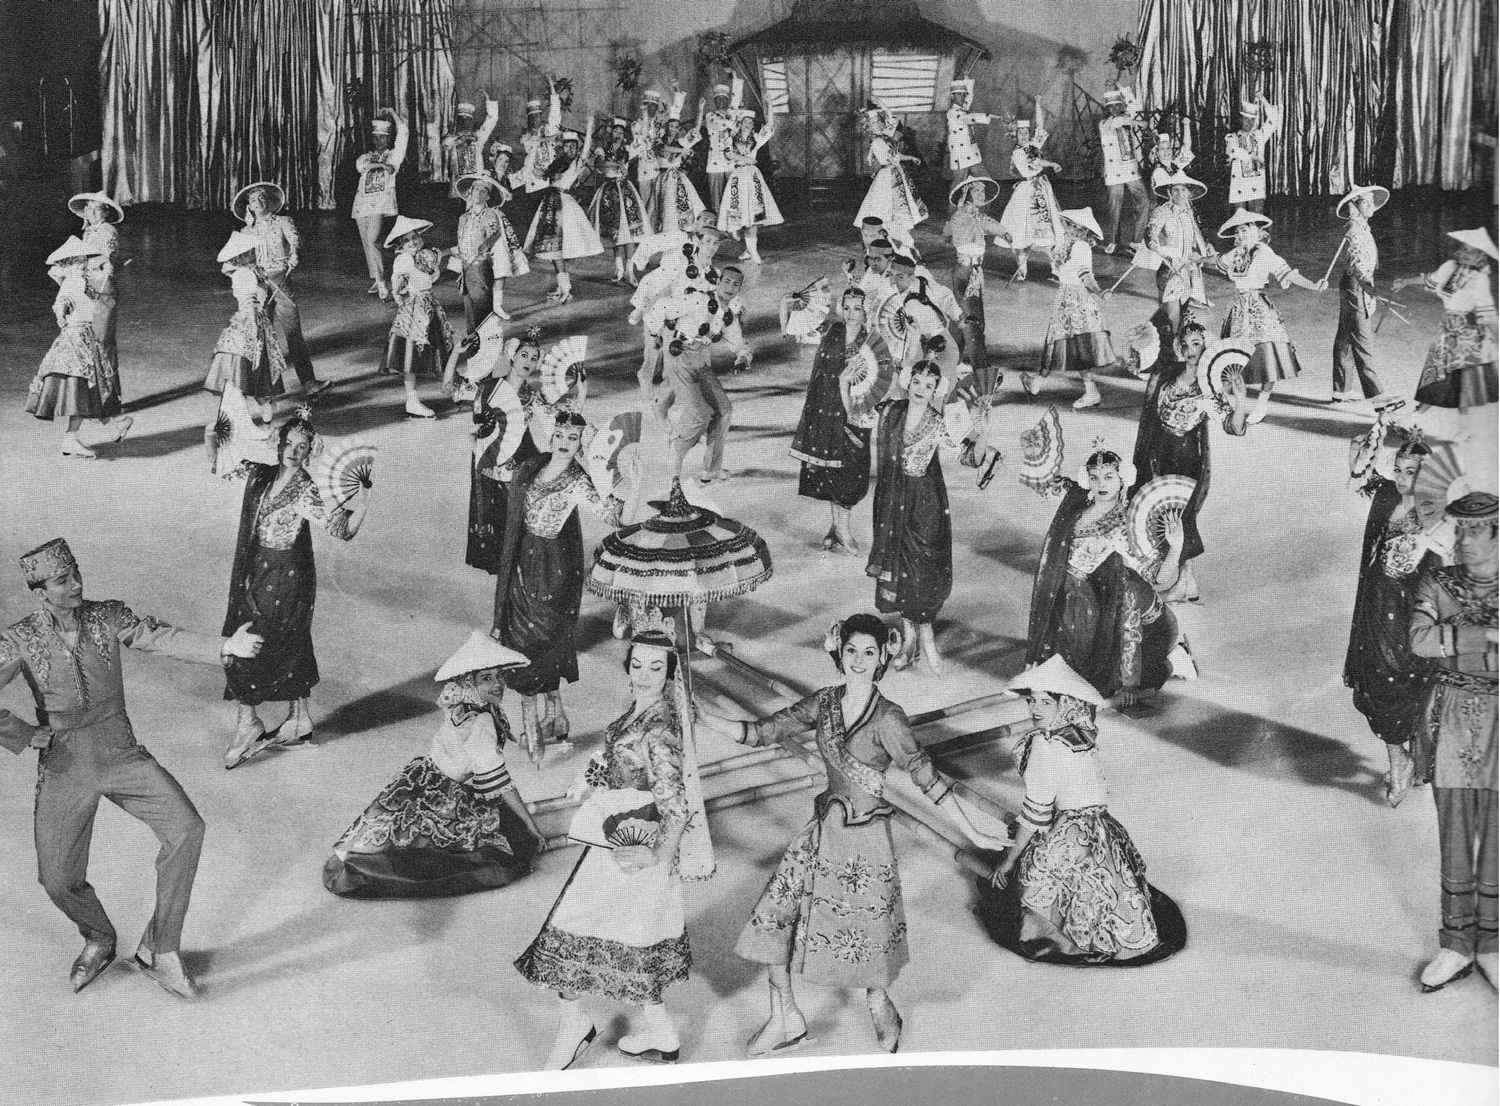 """The entire cast of 52 Ice Cadet and Capette skaters in """"Philippine Dances Suite,"""" 1961 edition. (Source: """"Ice Capades"""" and author)"""